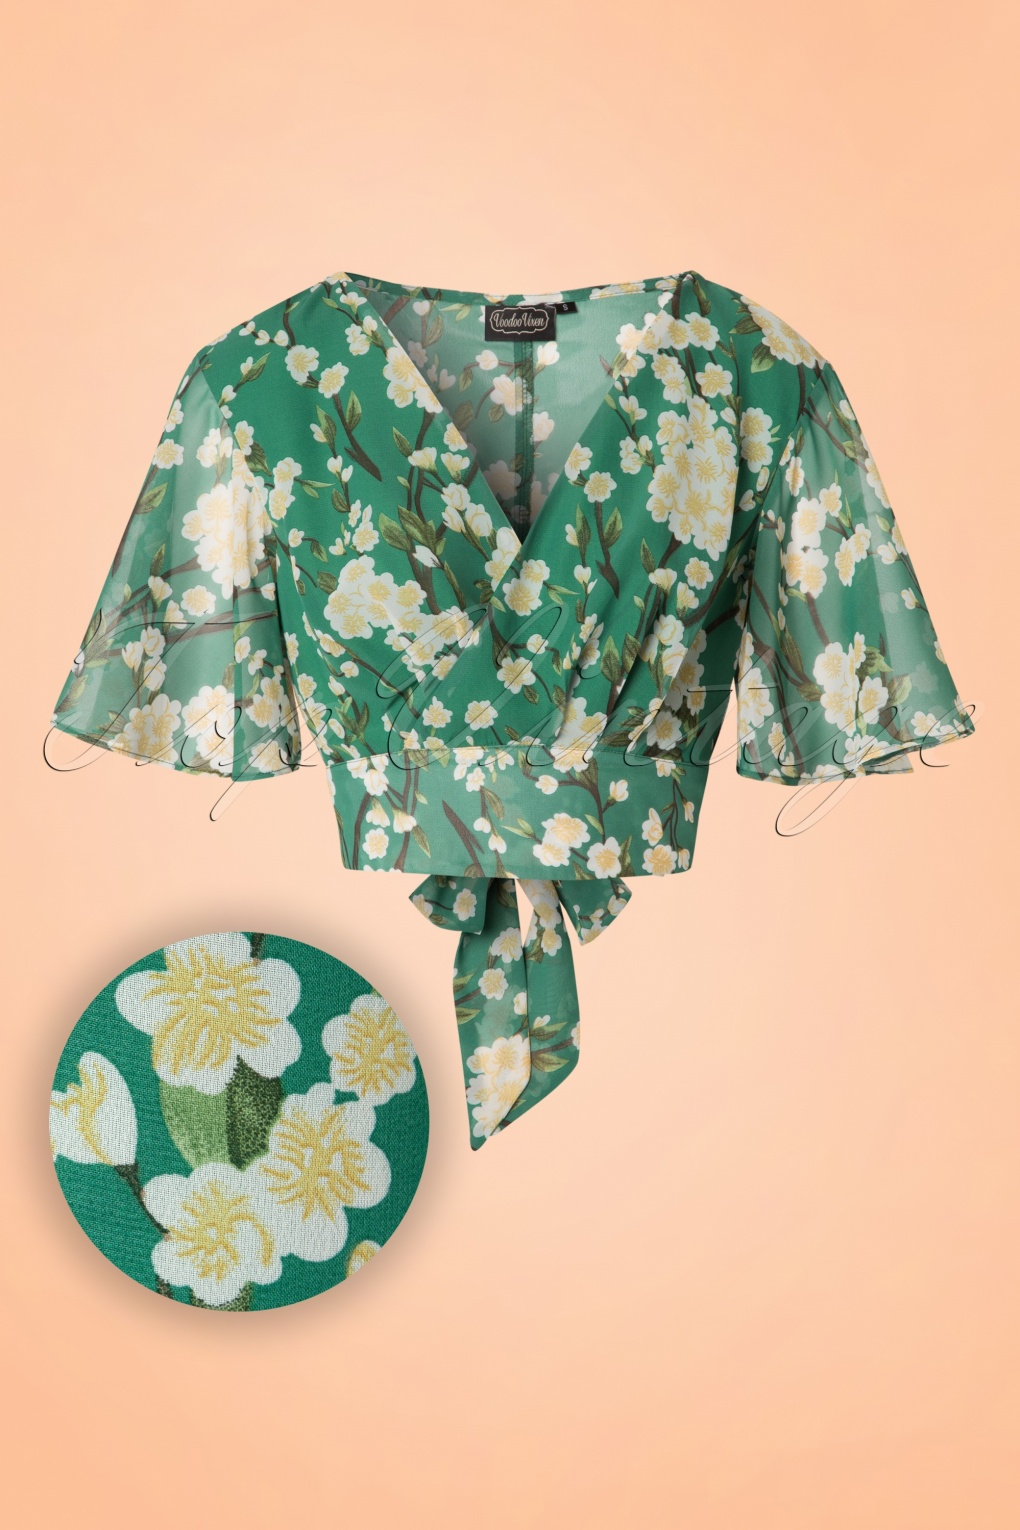 1940s Blouses, Shirts and Tops Fashion History 40s Leah Flowers Top in Green £39.05 AT vintagedancer.com